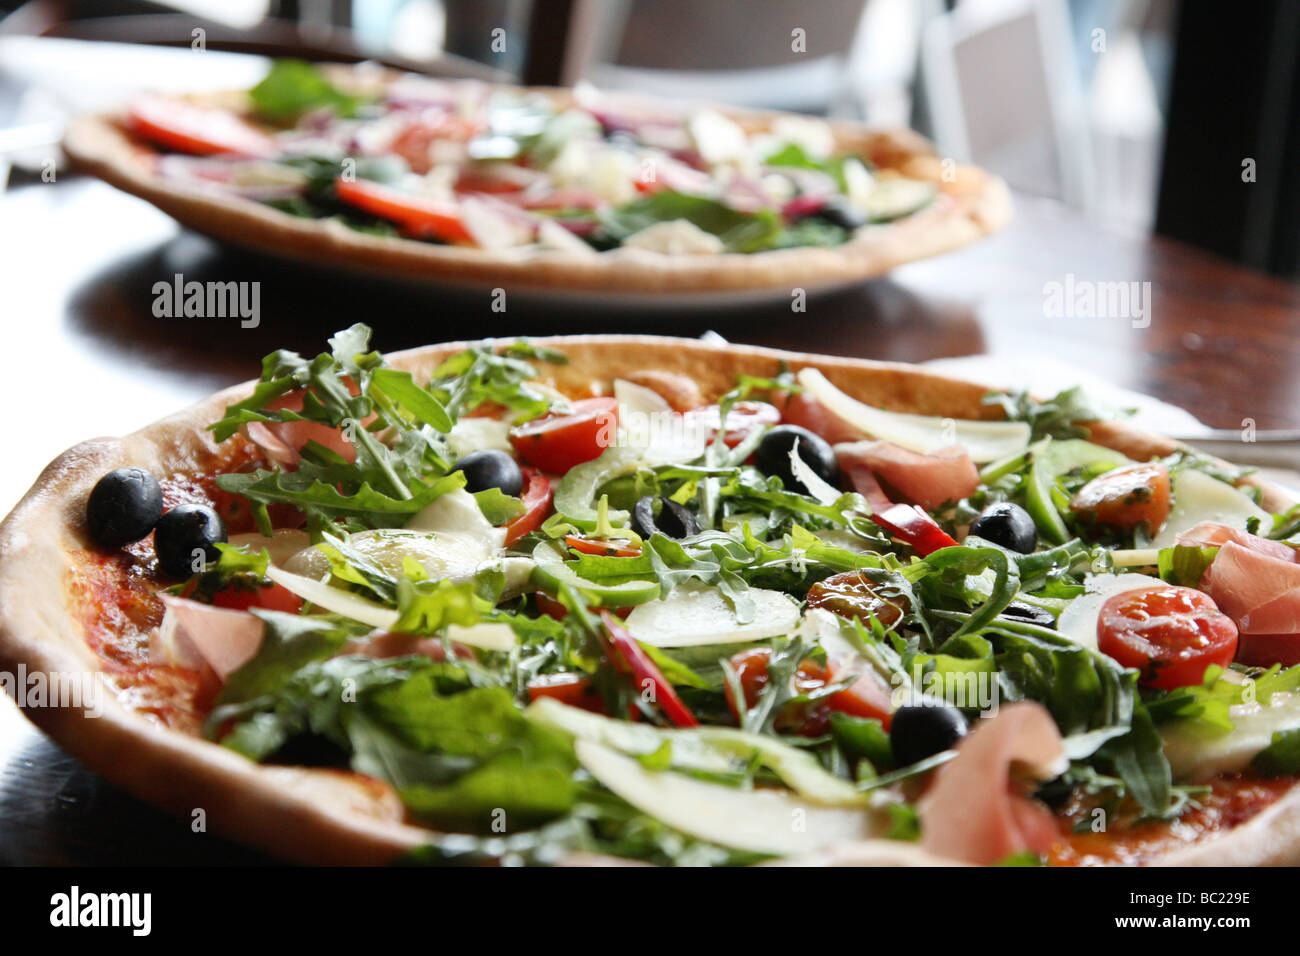 Two pizzas that look tempting and delicious ready for eating. Stone baked thin crust - Stock Image